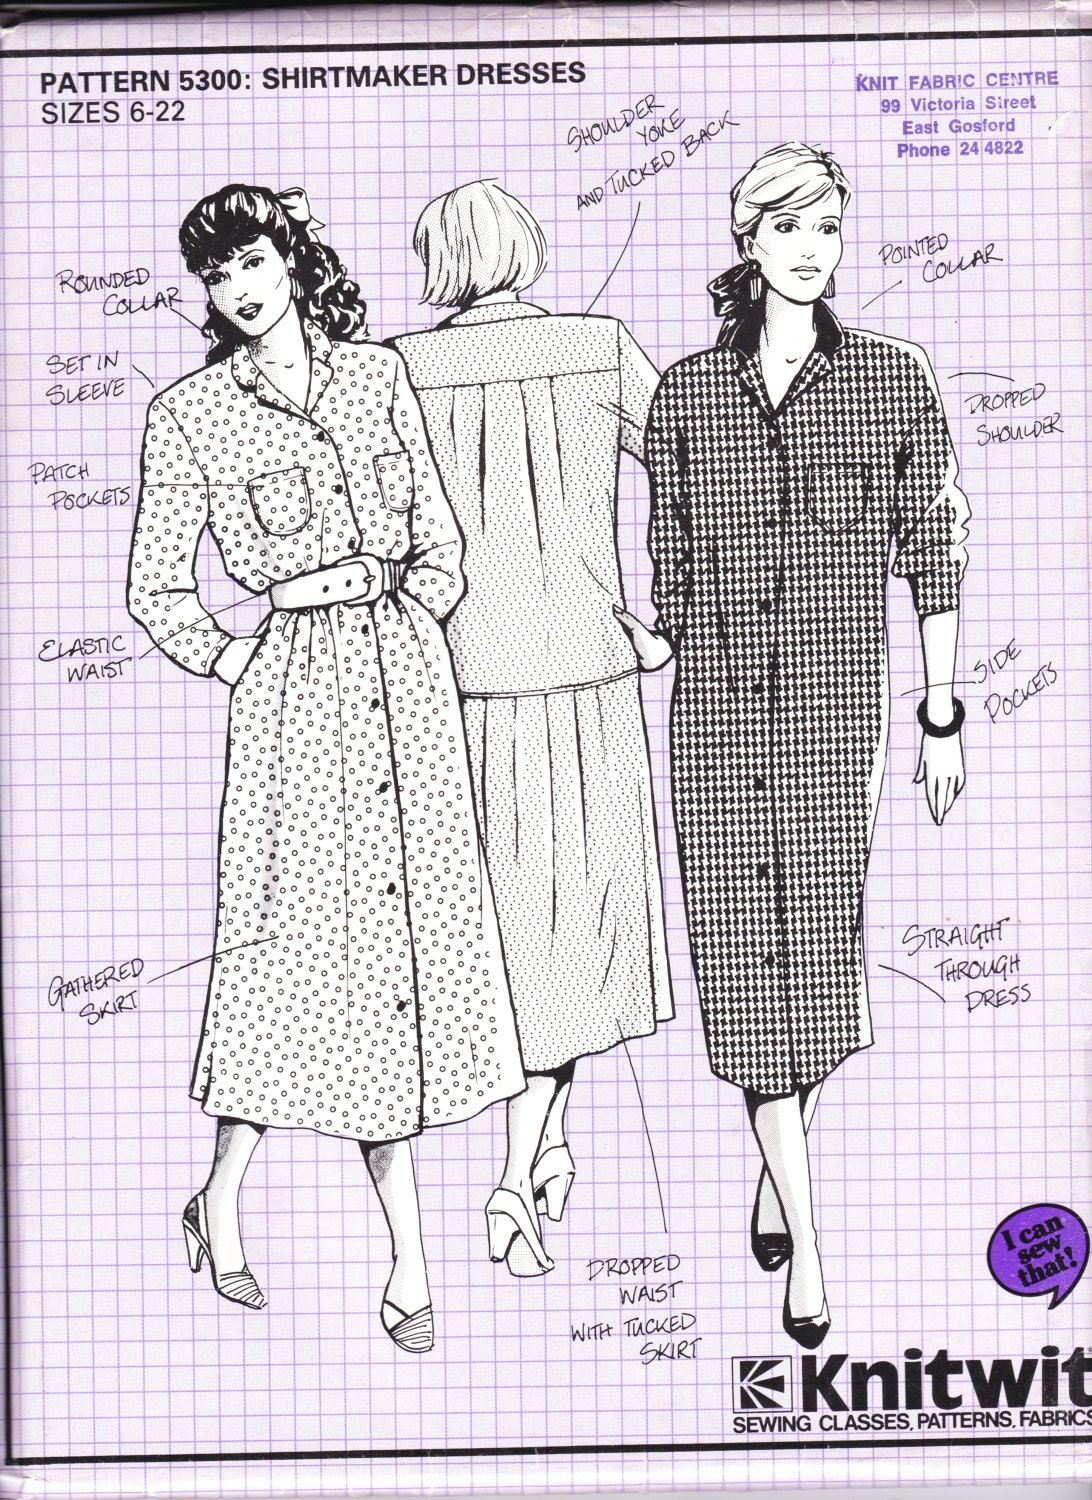 Knitwit sewing patterns choice image craft decoration ideas knitwit sewing patterns image collections craft decoration ideas 80s sewing patterns images craft decoration ideas knitwit bankloansurffo Images